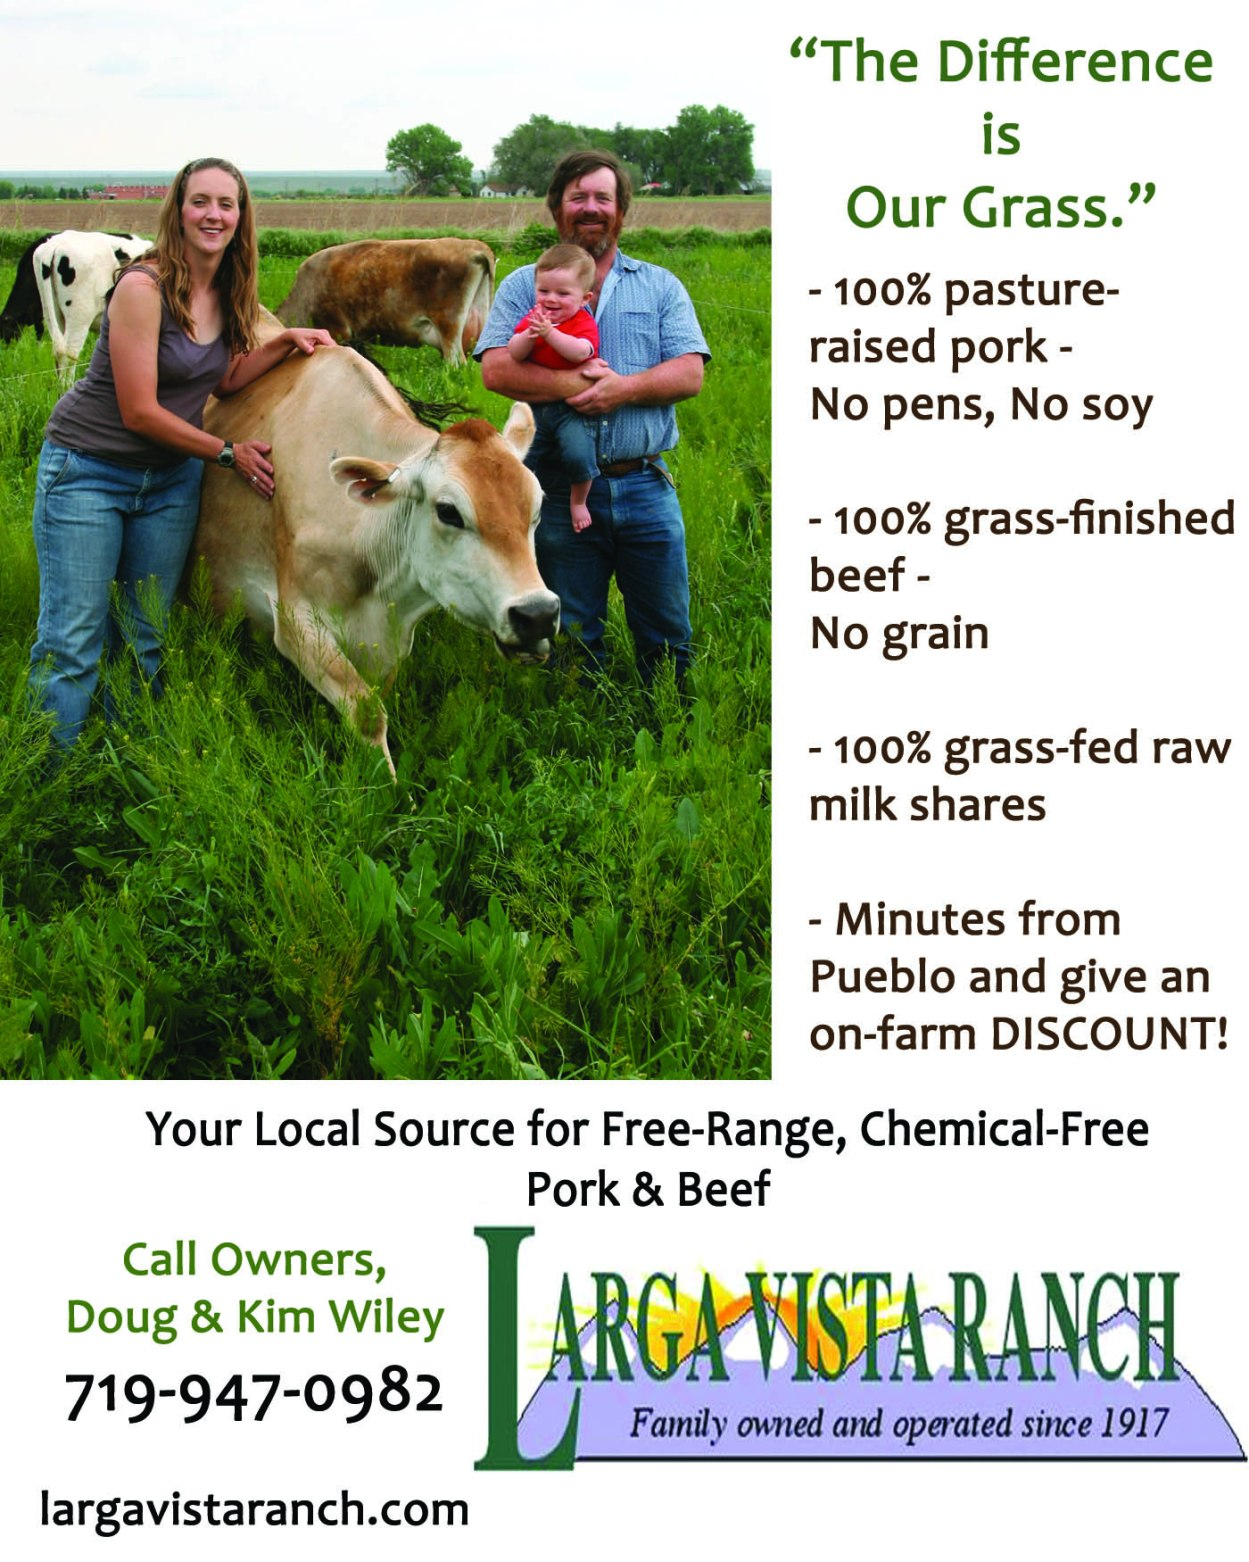 Larga Vista Ranch Advertisement